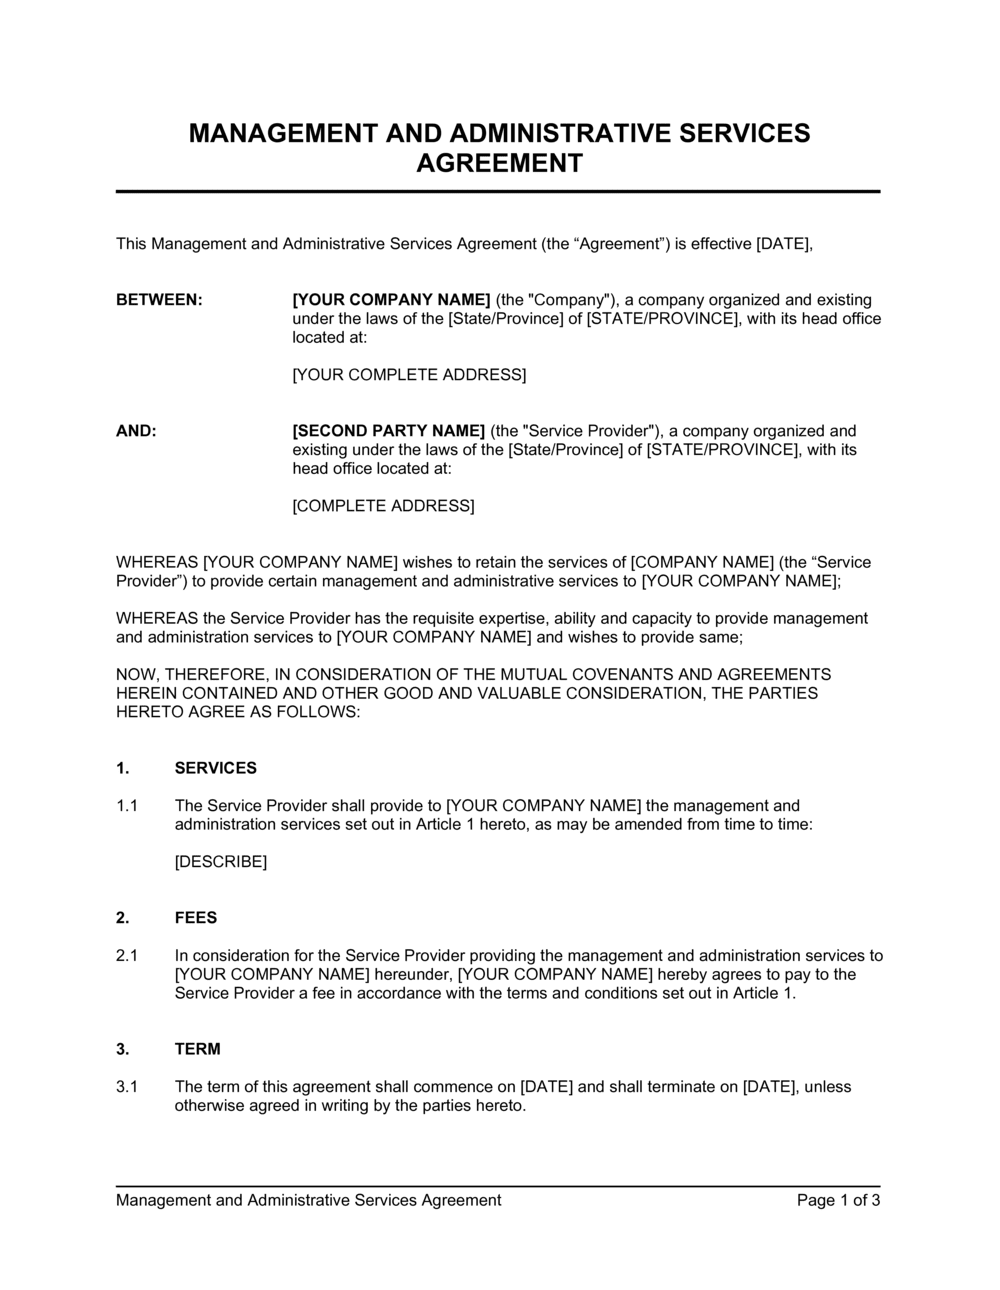 Business-in-a-Box's Management and Administrative Services Agreement Template